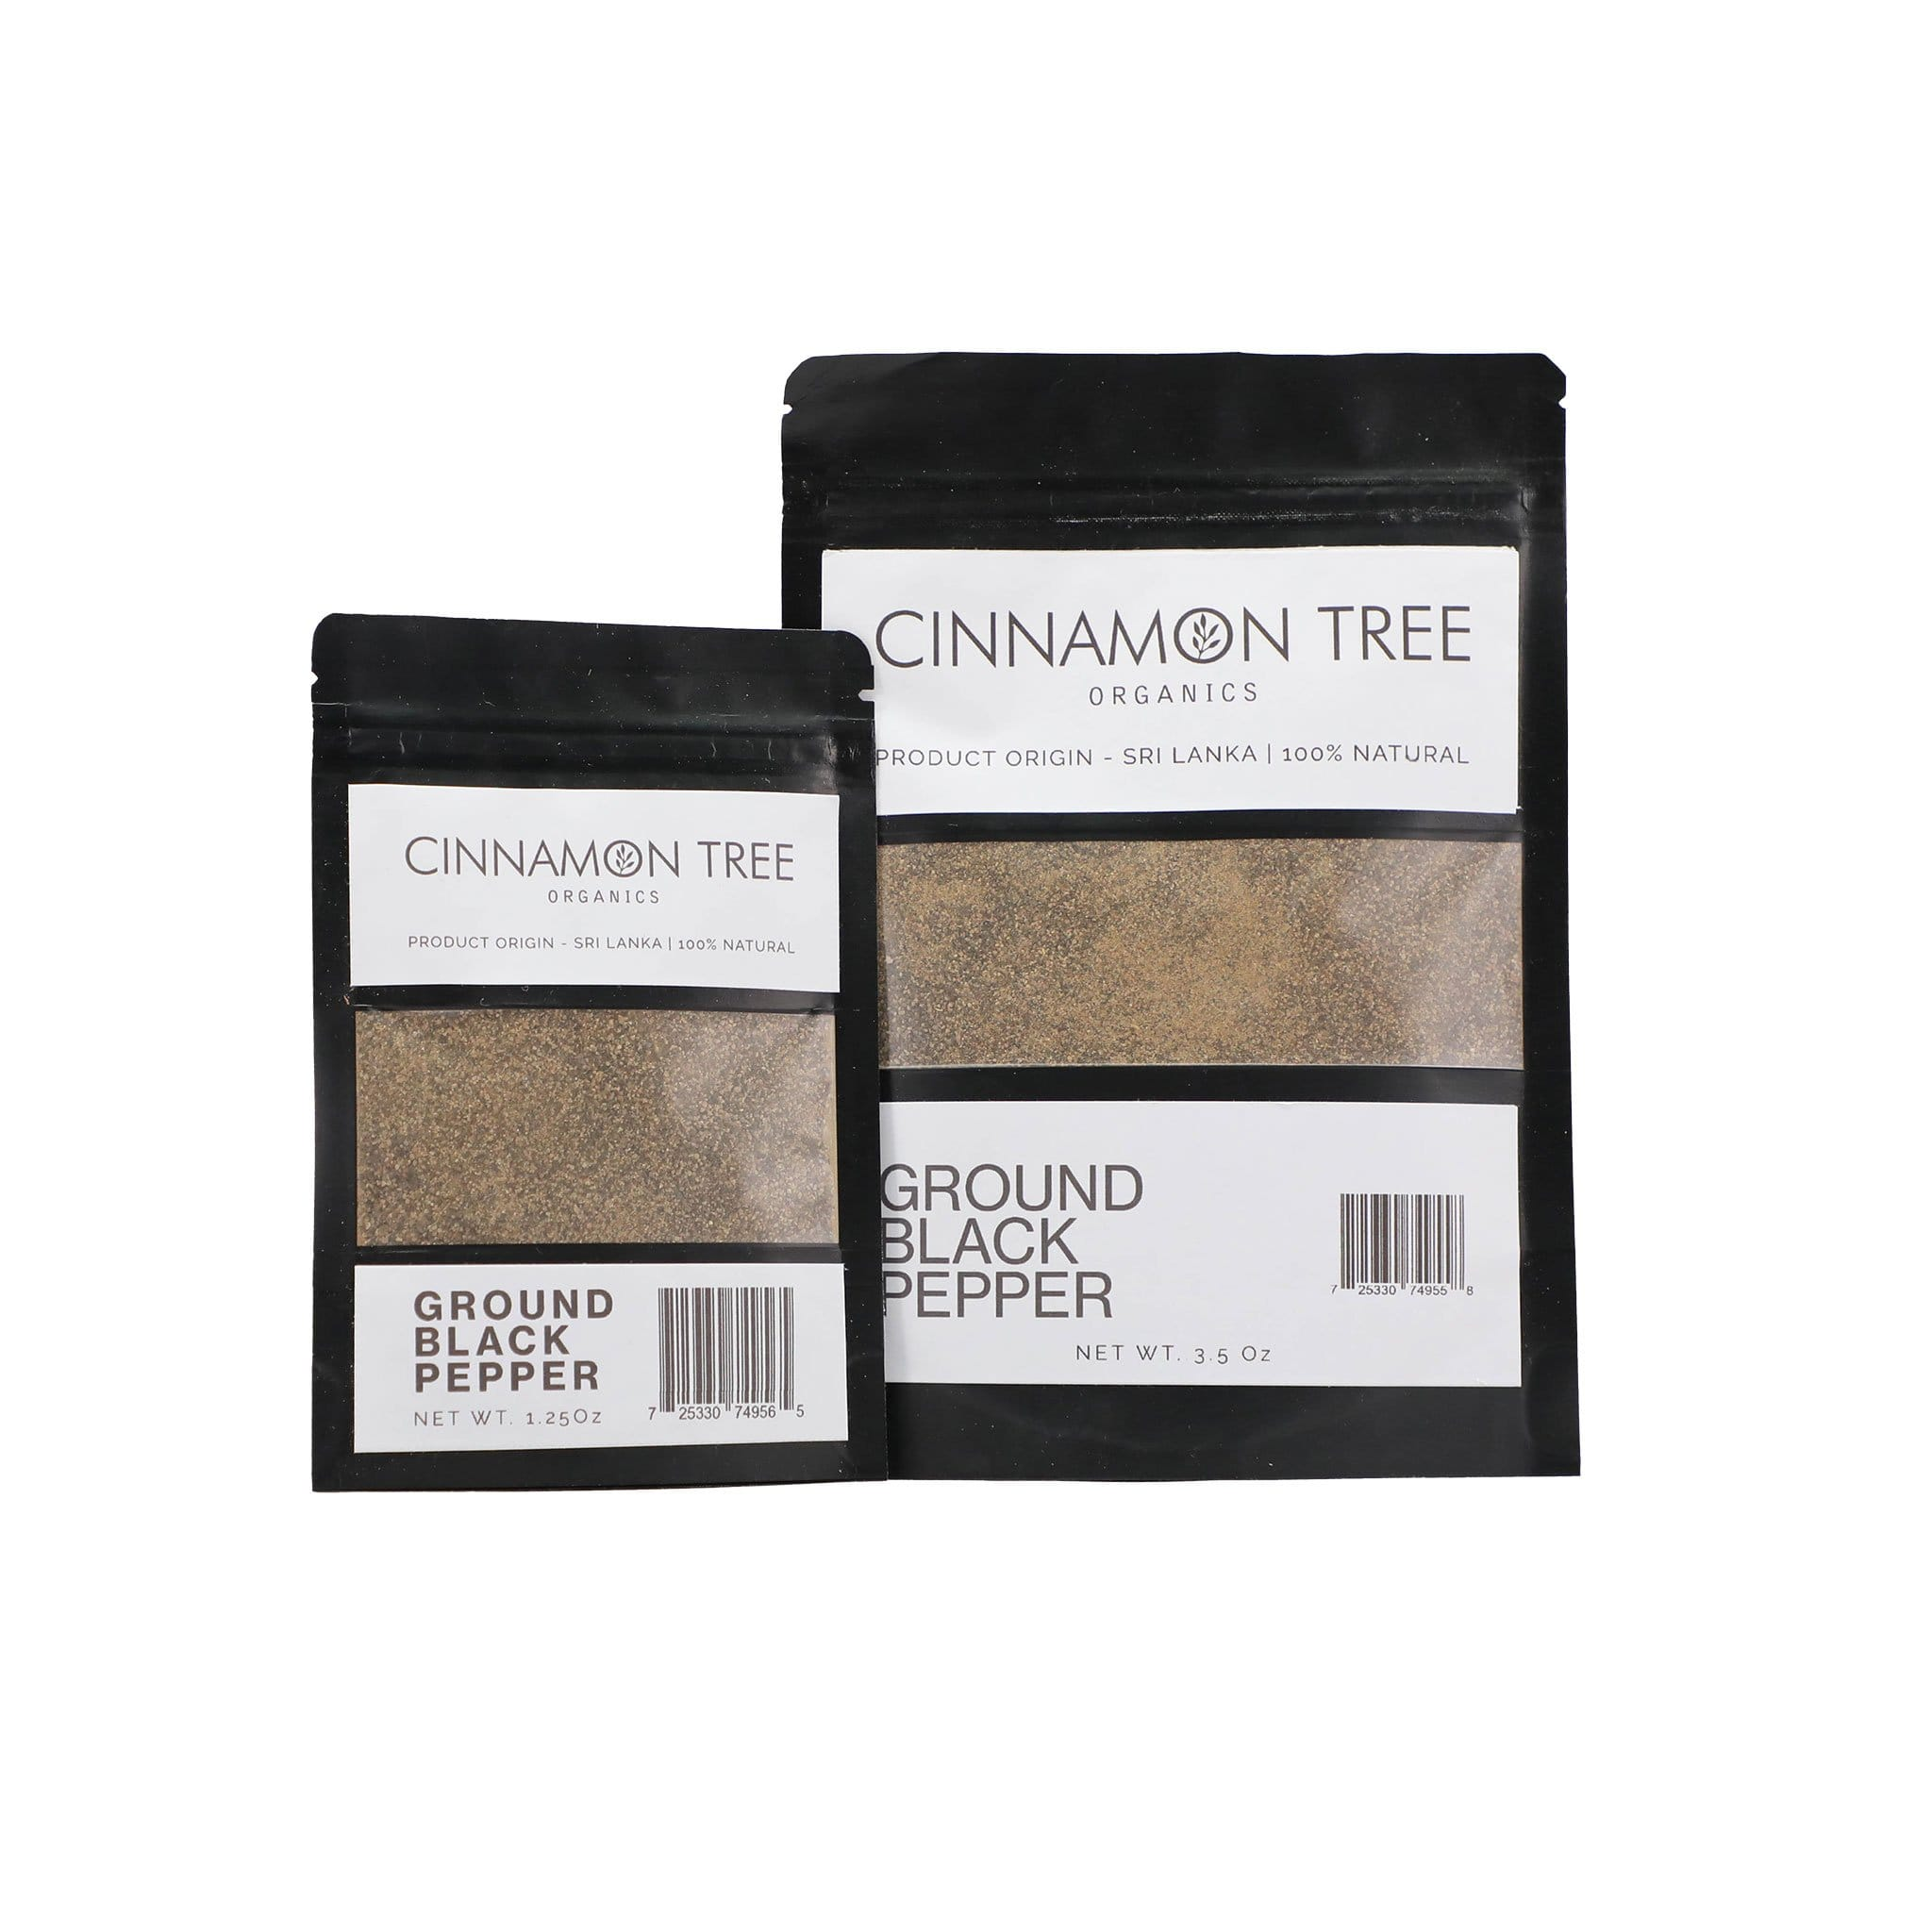 Cinnamon Tree Organics Ground Black Pepper Pouches